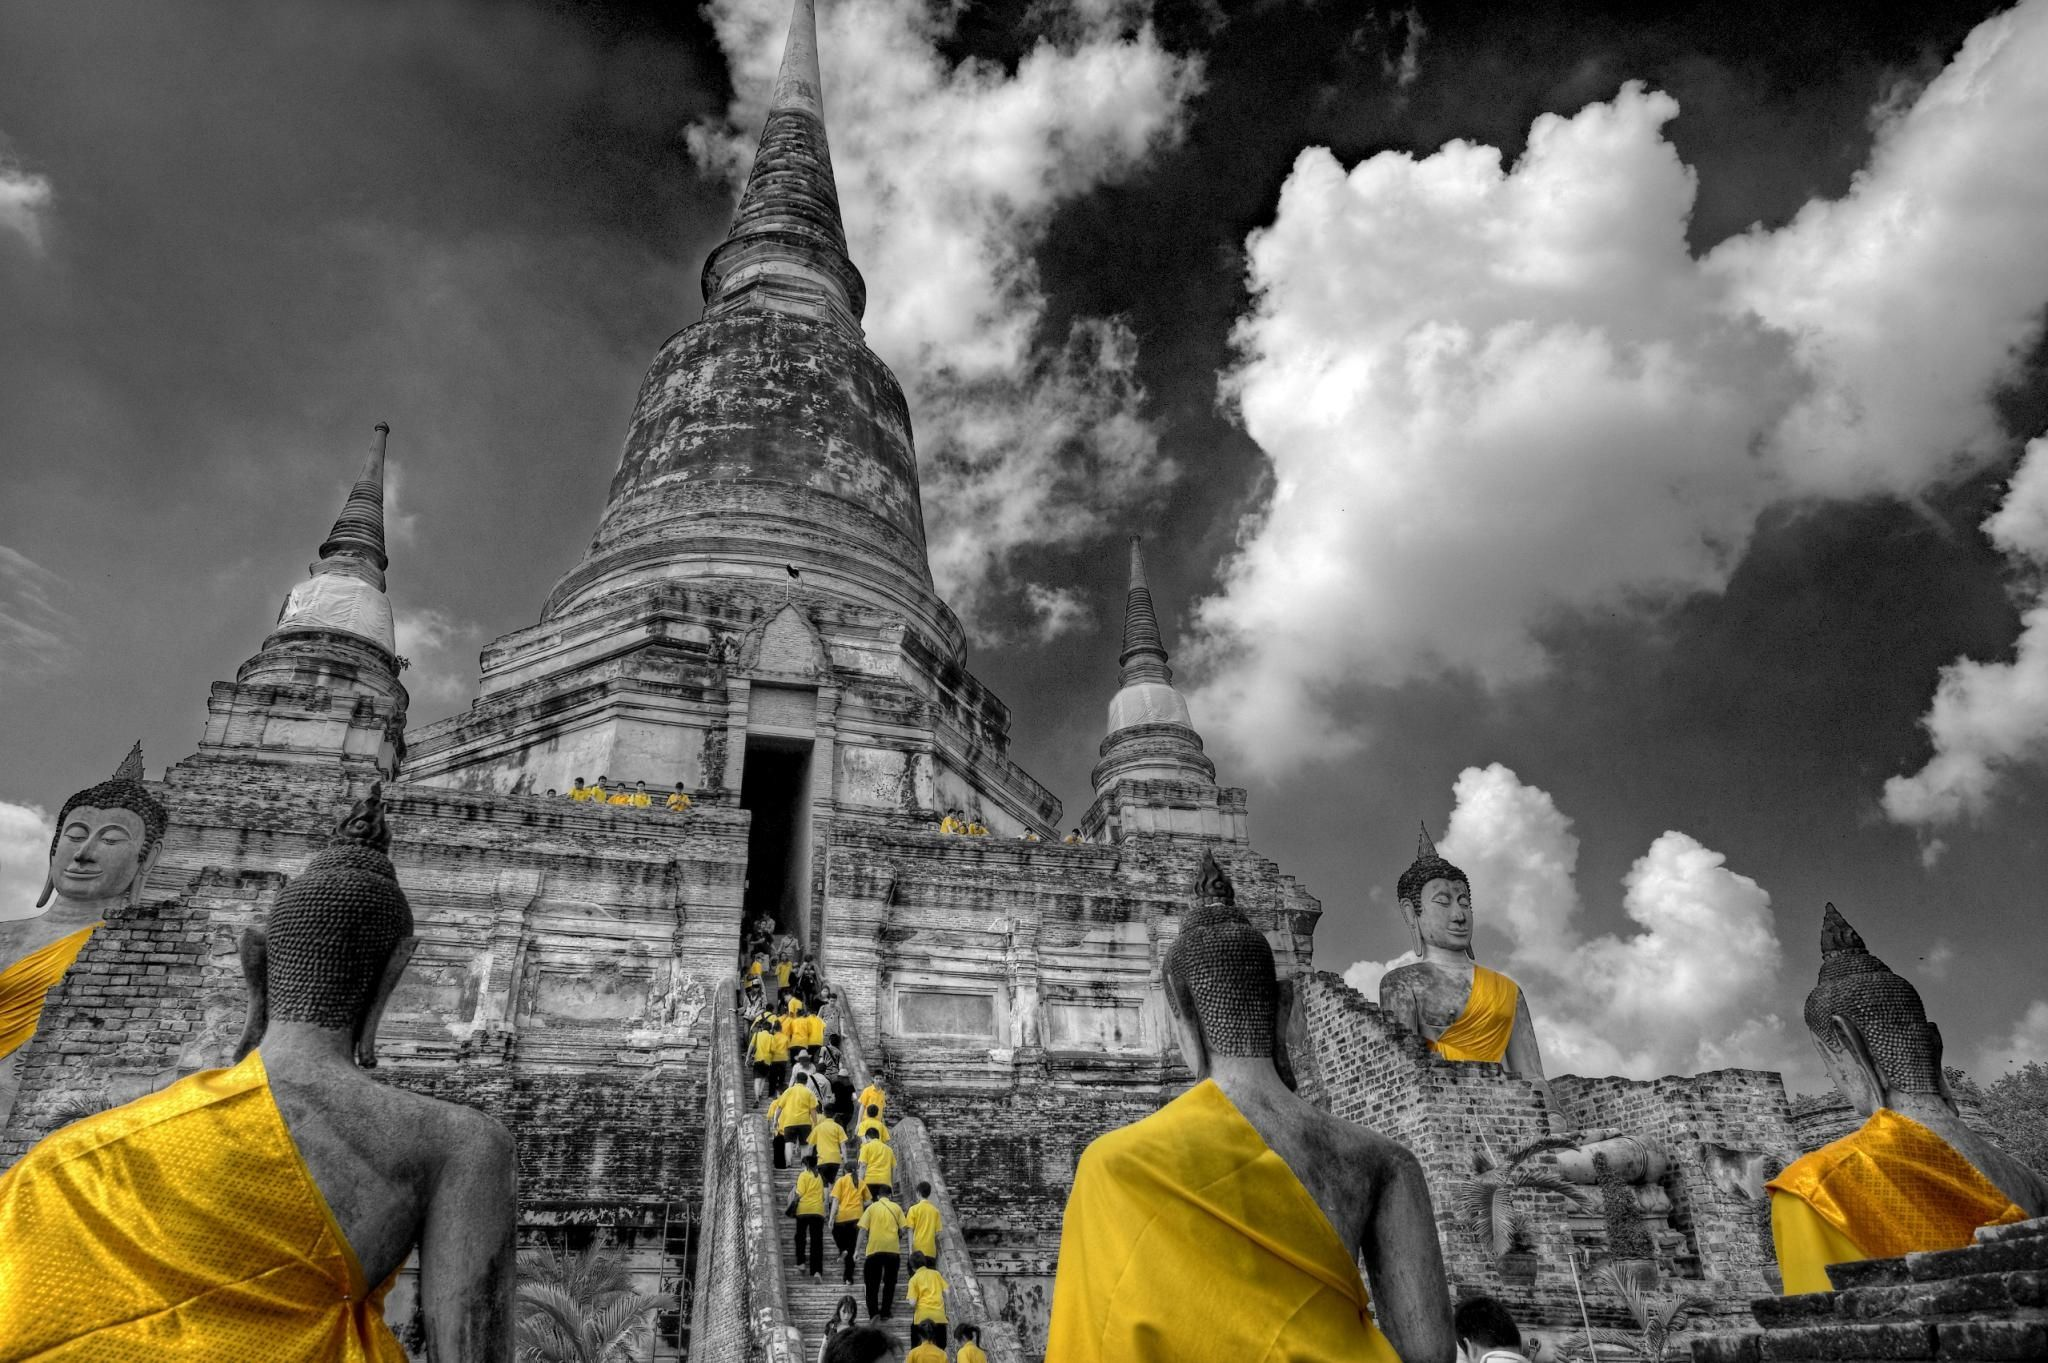 Home Of The Yellow Shirts - Schoolchildren ascending the stairs of Wat Yai Chai Mongkhon temple in Ayutthaya, Thailand.